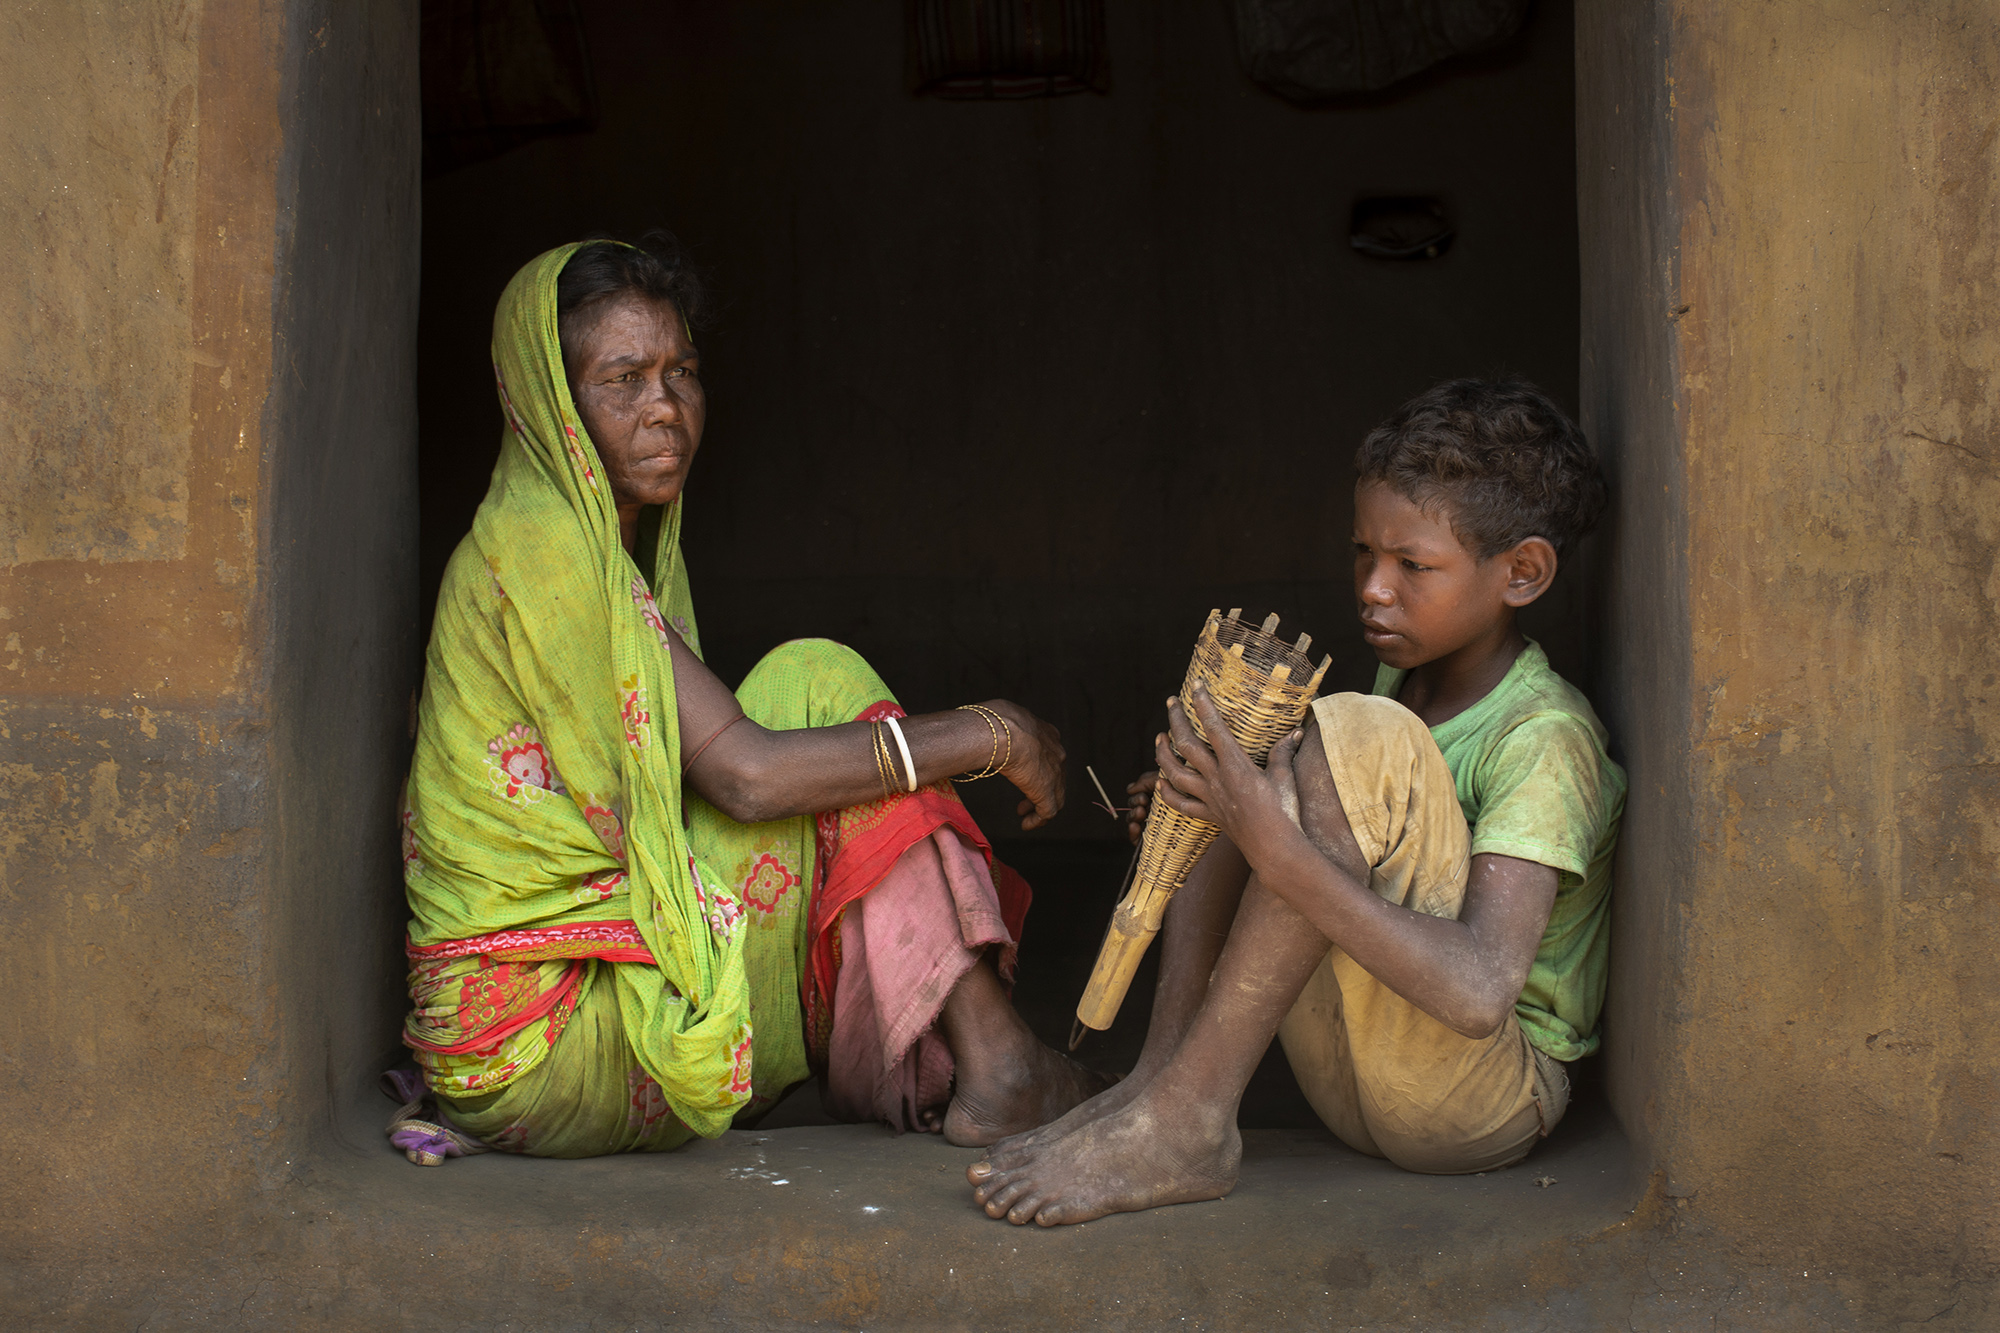 This is a shabar family at Purulia.They are rat catcher.The boy learn with rat catching weapons from his mother.